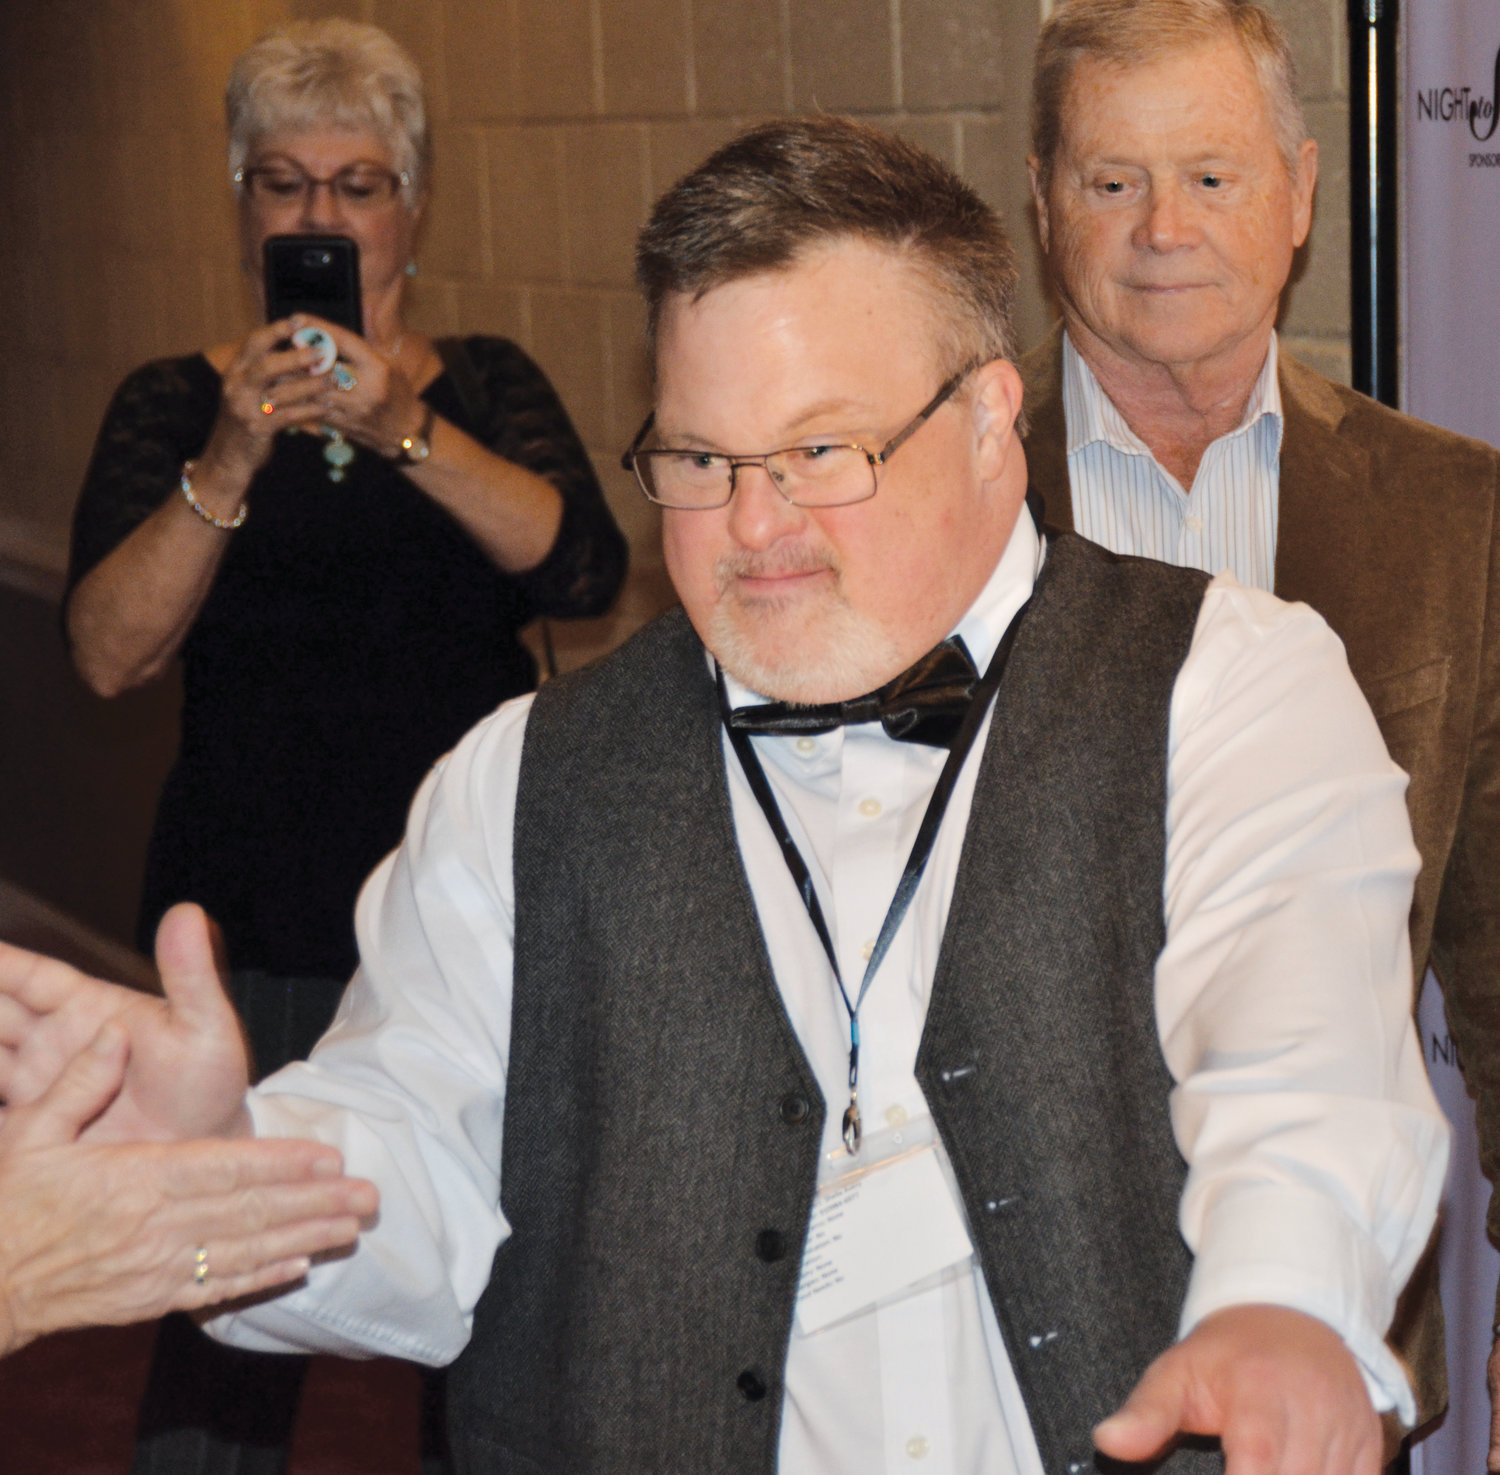 Larry Avery of Dunn high fives the paparazzi as he makes his way along the red carpet at Friday night's Night To Shine at the  Dunn Shrine Center. The event was sponsored by the Tim Tebow Foundation and hosted by the Mt. Carmel PFWB Church.